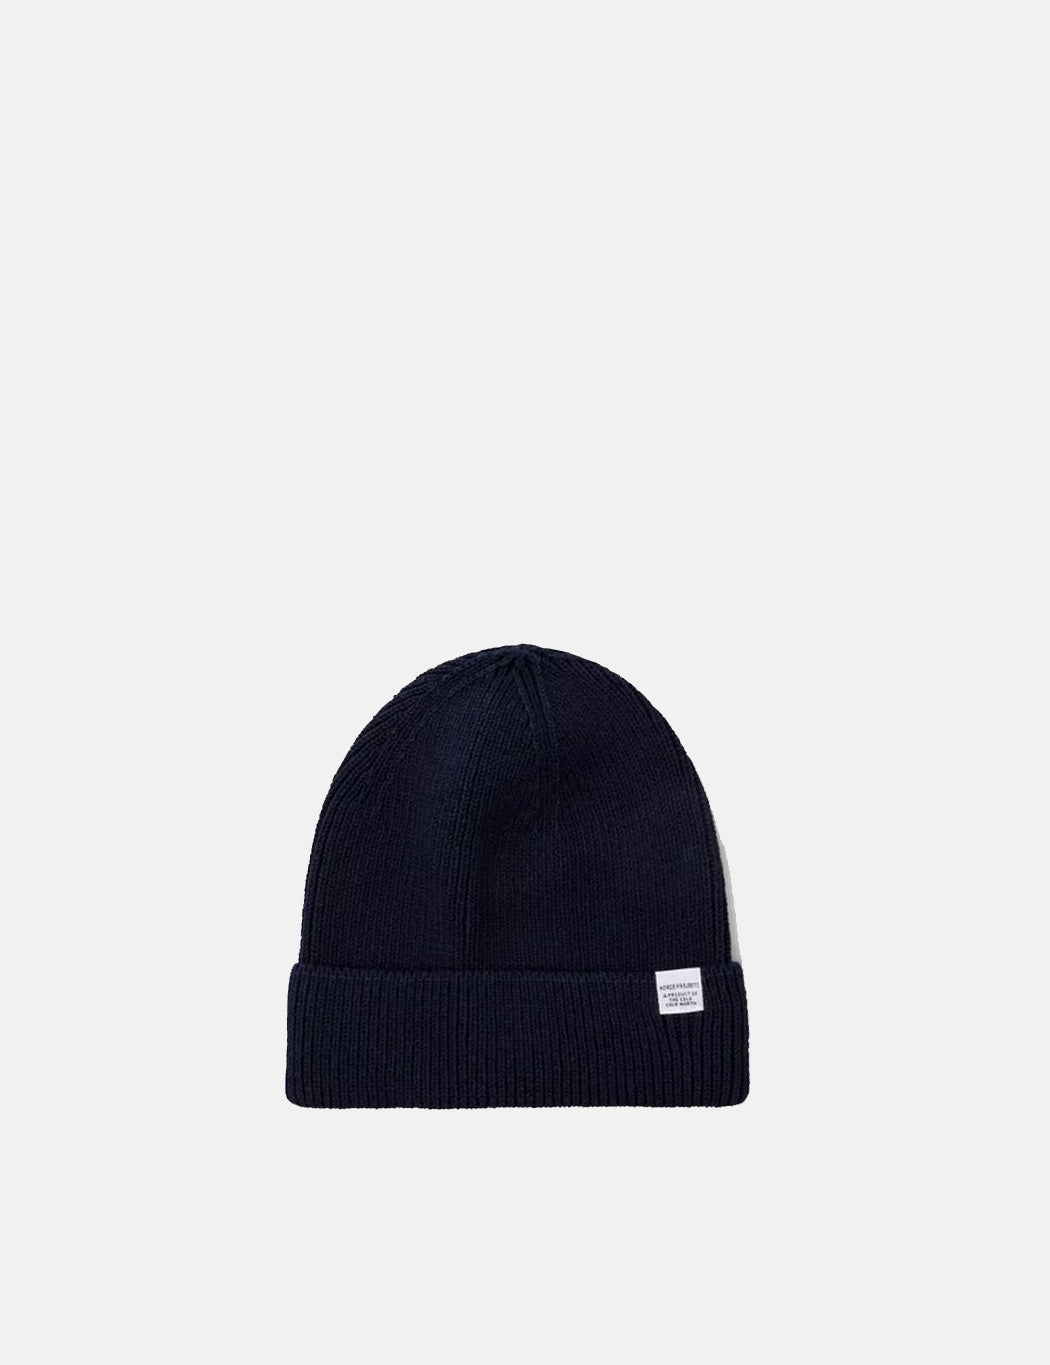 4a243a81e7d Norse Projects Cotton Watch Beanie Hat - Navy